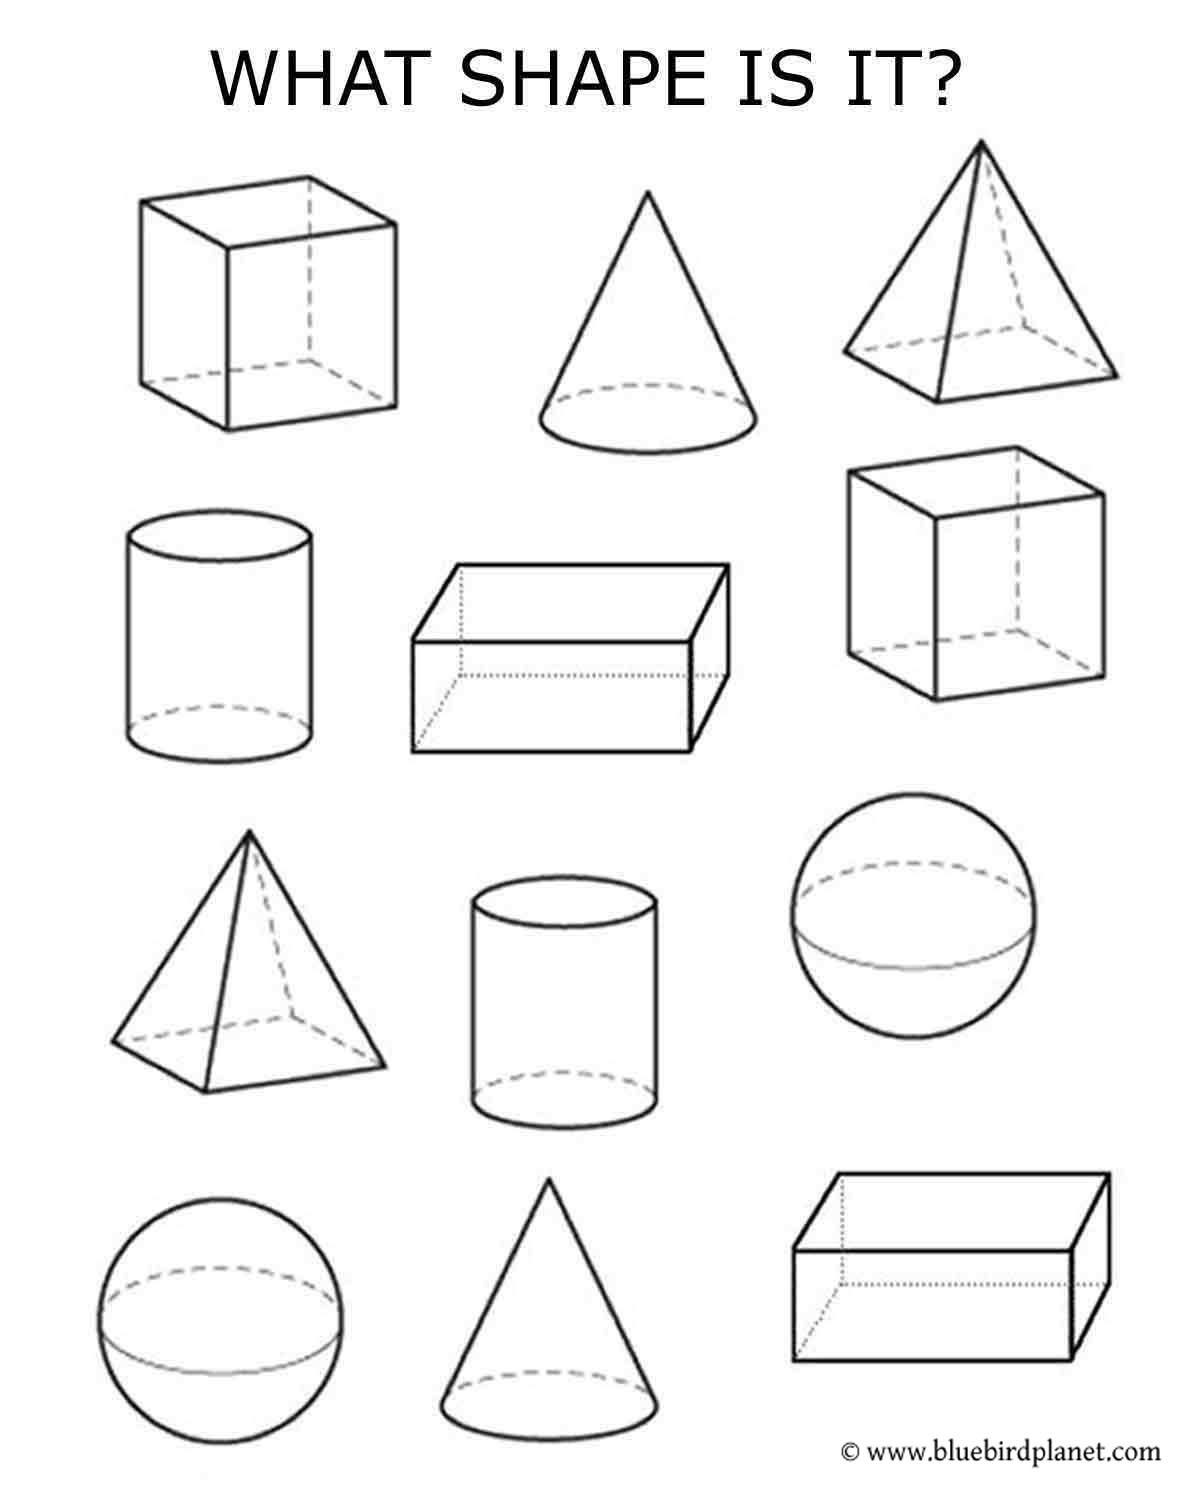 Polygon Worksheets 2nd Grade Free Printable Worksheets for Preschool Kindergarten 1st